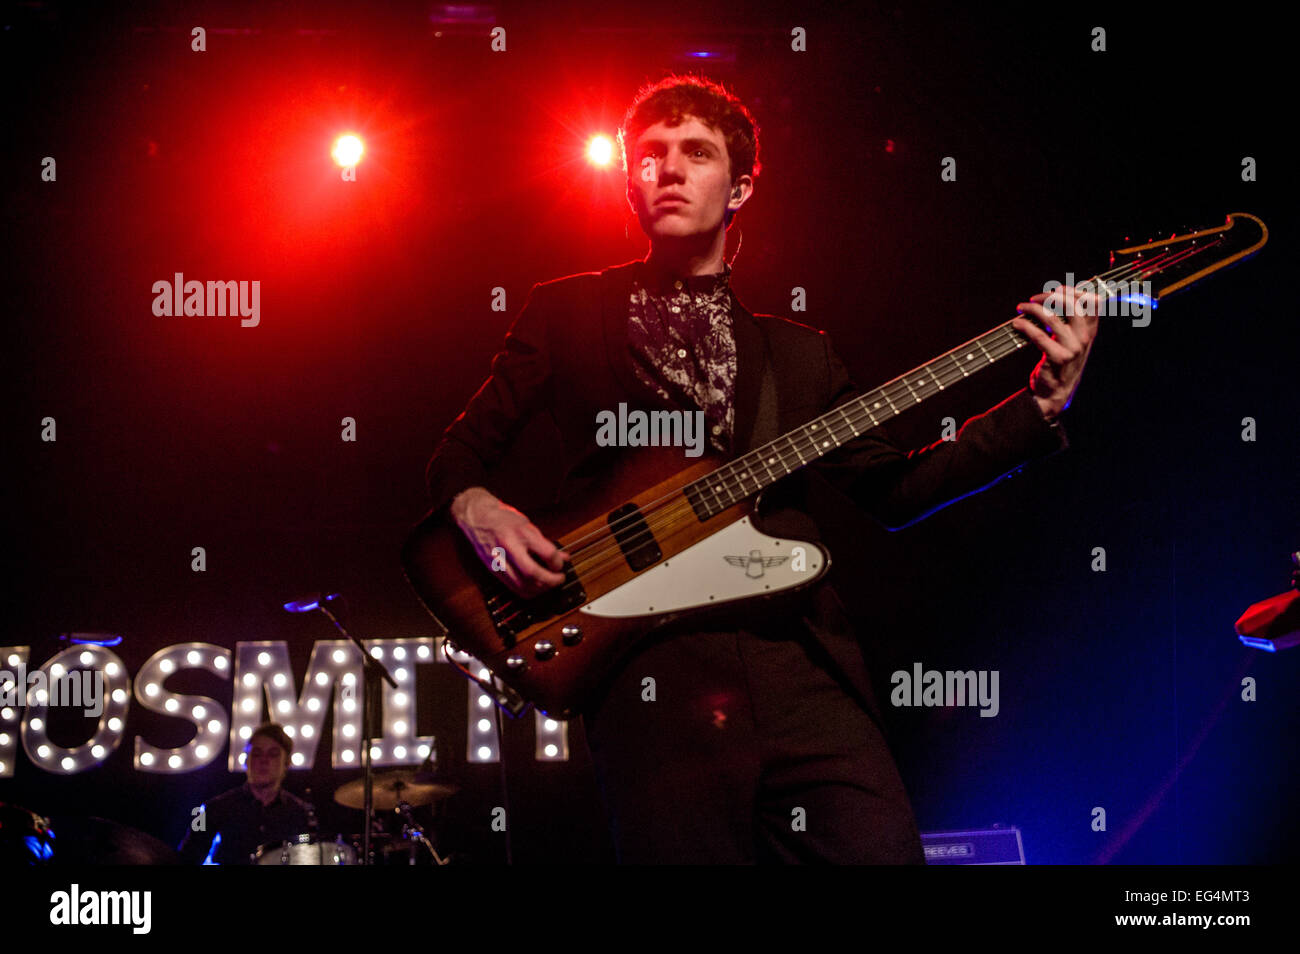 Austin, TX, USA. February 15, 2015. Noah Sierota of American indie pop band Echosmith. The band consists of four Stock Photo